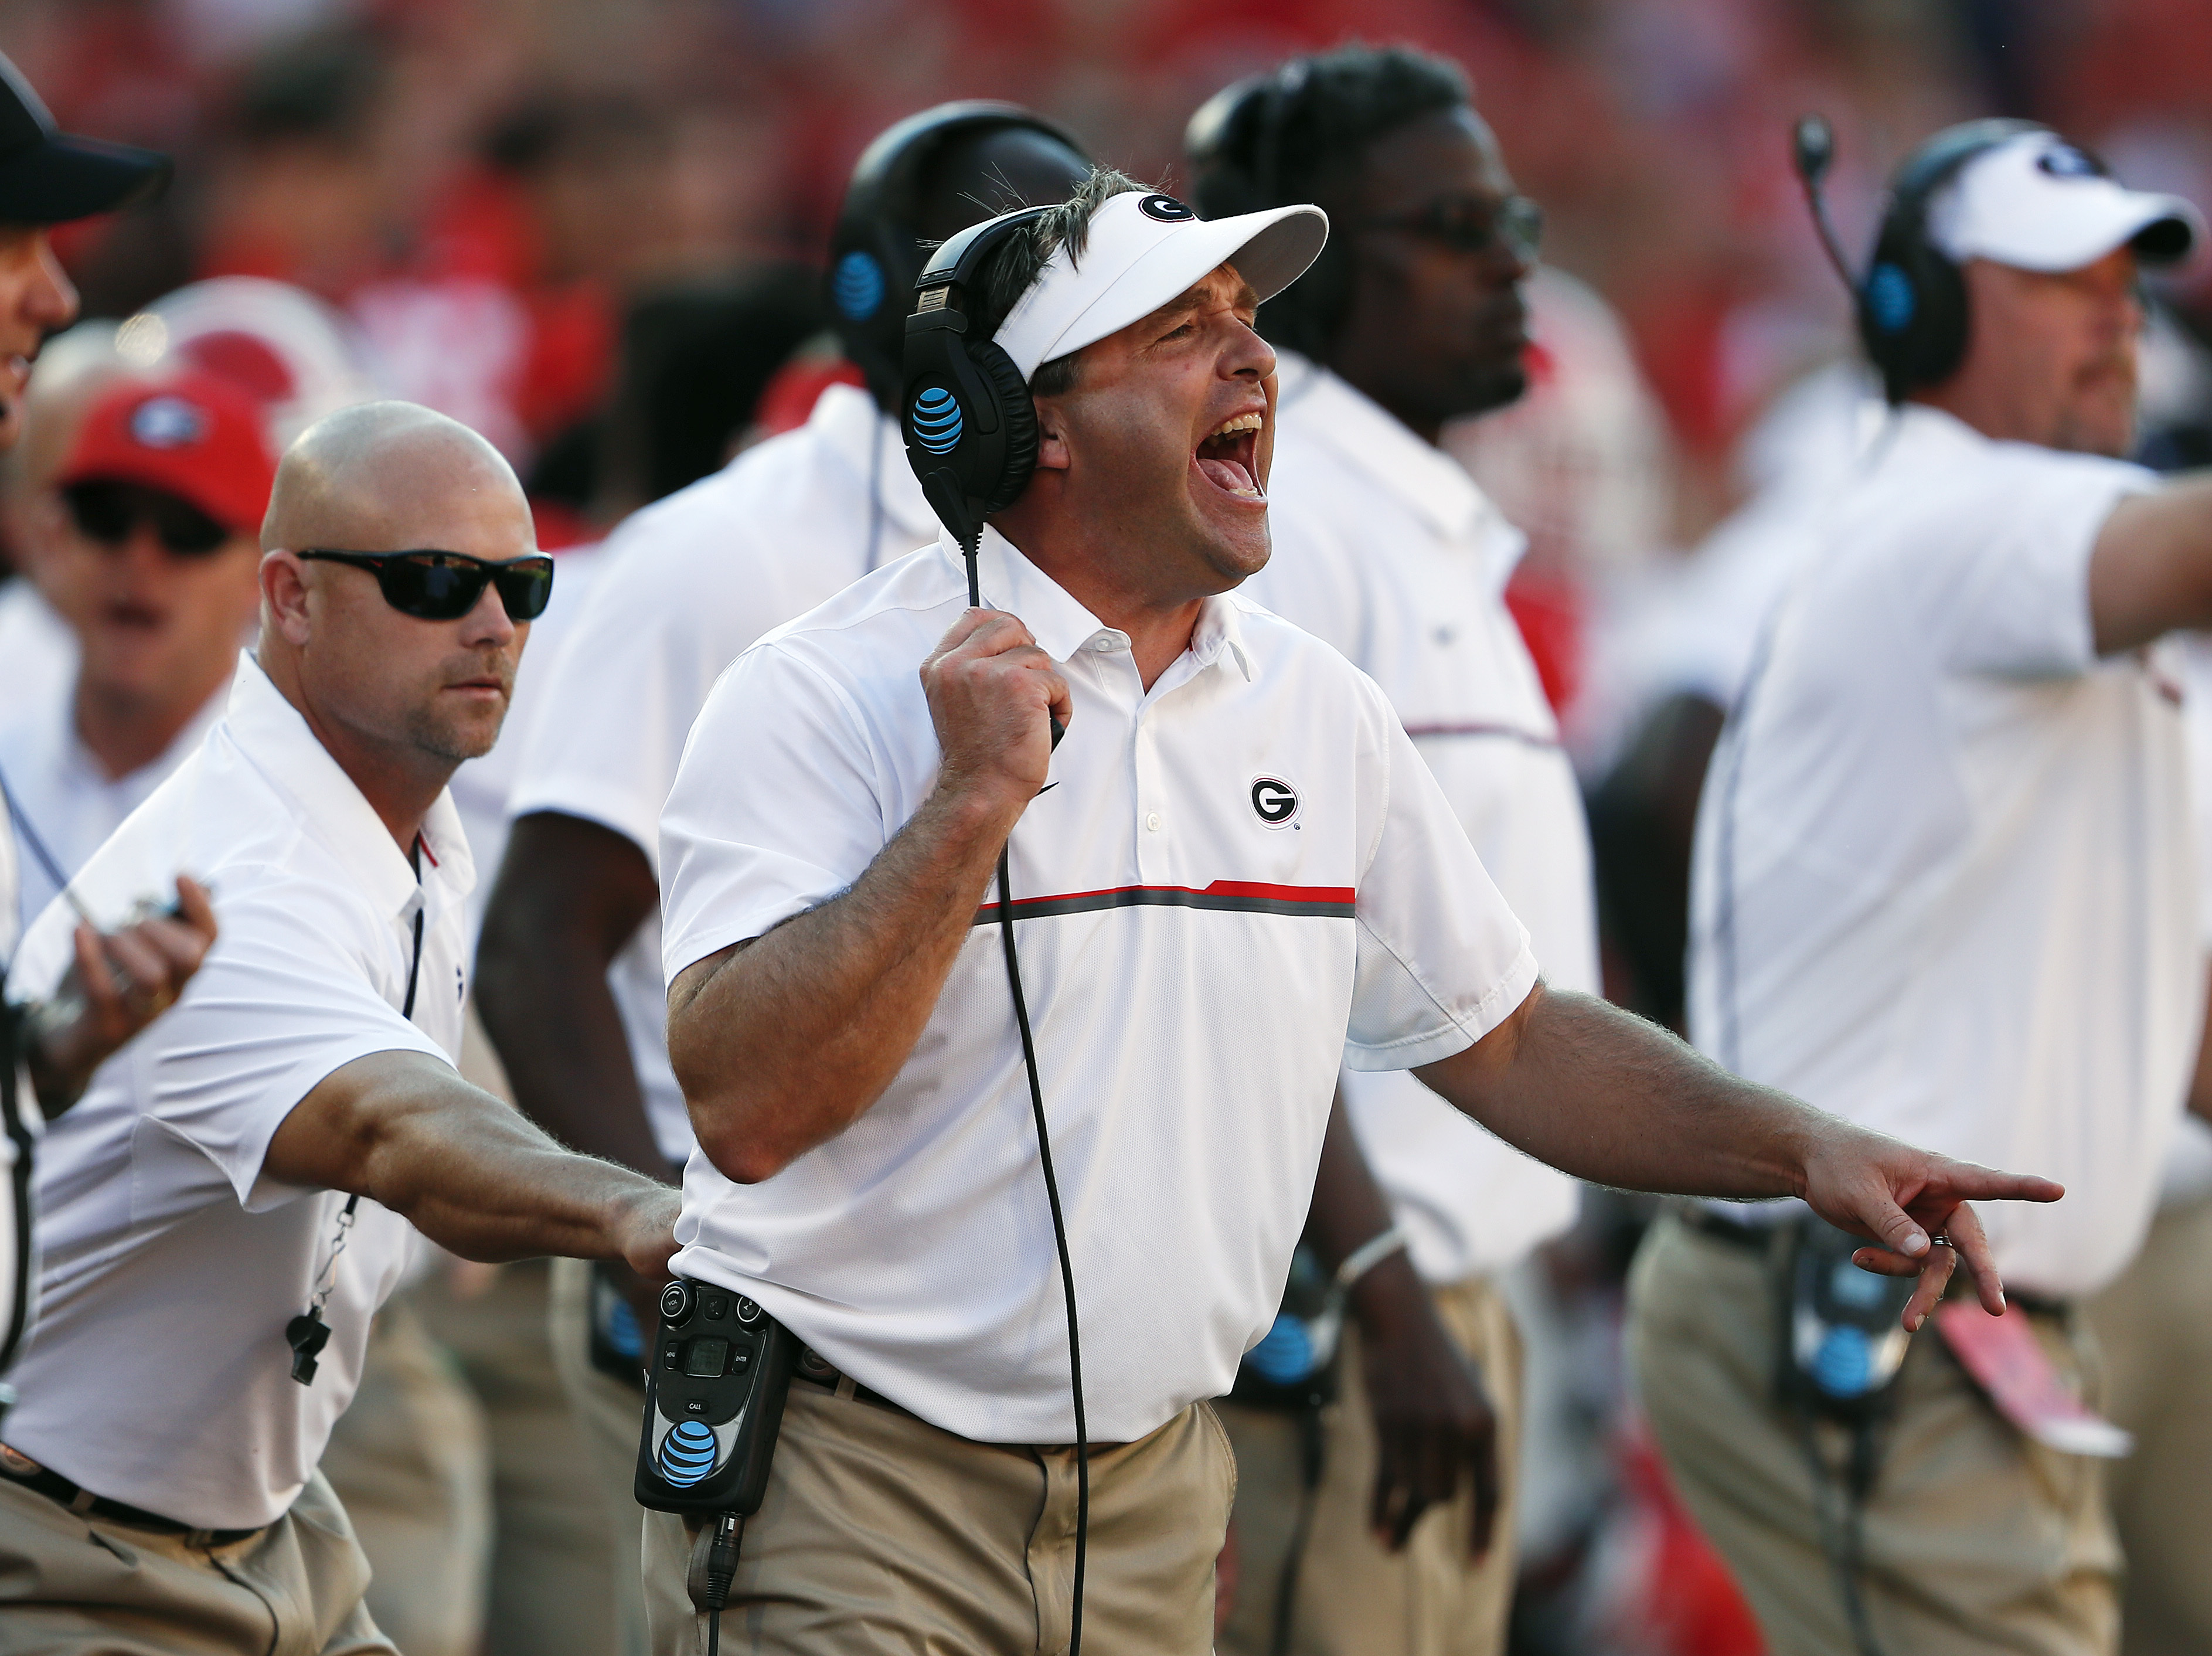 Georgia head coach Kirby Smart yells from the sidelines in the second half of an NCAA college football game against Tennessee Saturday, Oct. 1, 2016, in Athens, Ga. Tennessee  won 34-31. (AP Photo/John Bazemore)